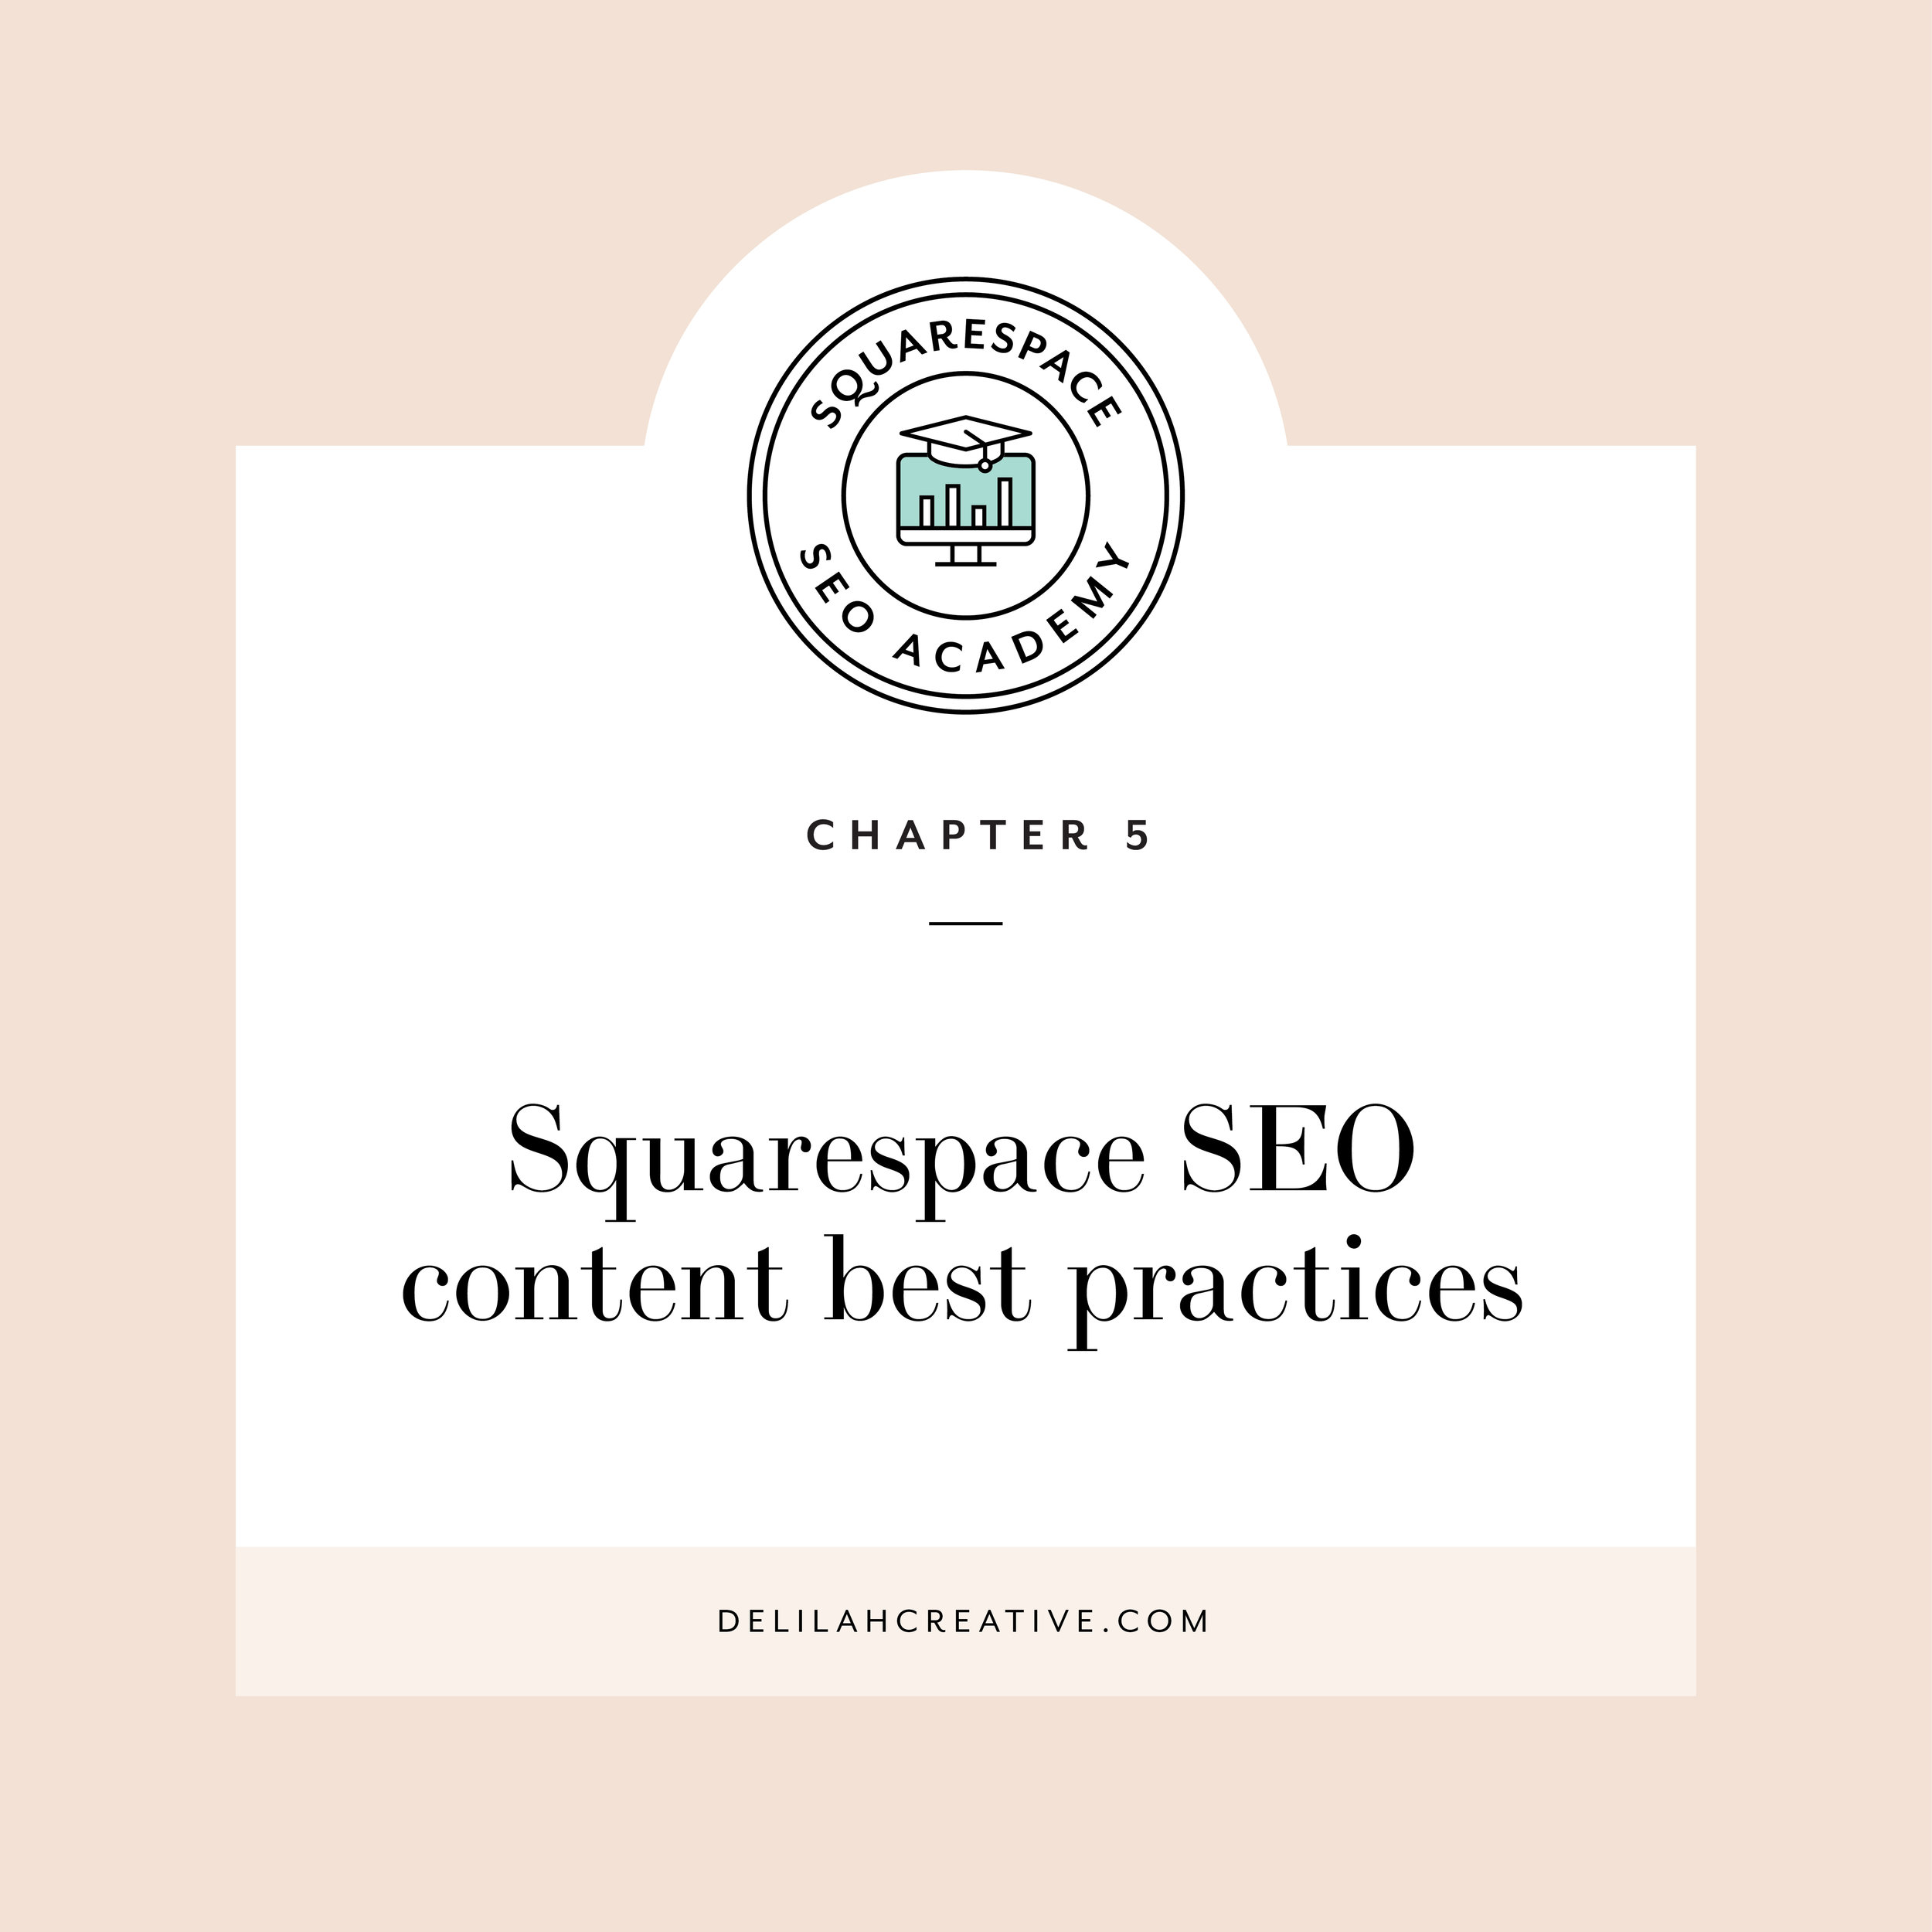 SEO-squarespace-academy-Squarespace-SEO-content-best-practices